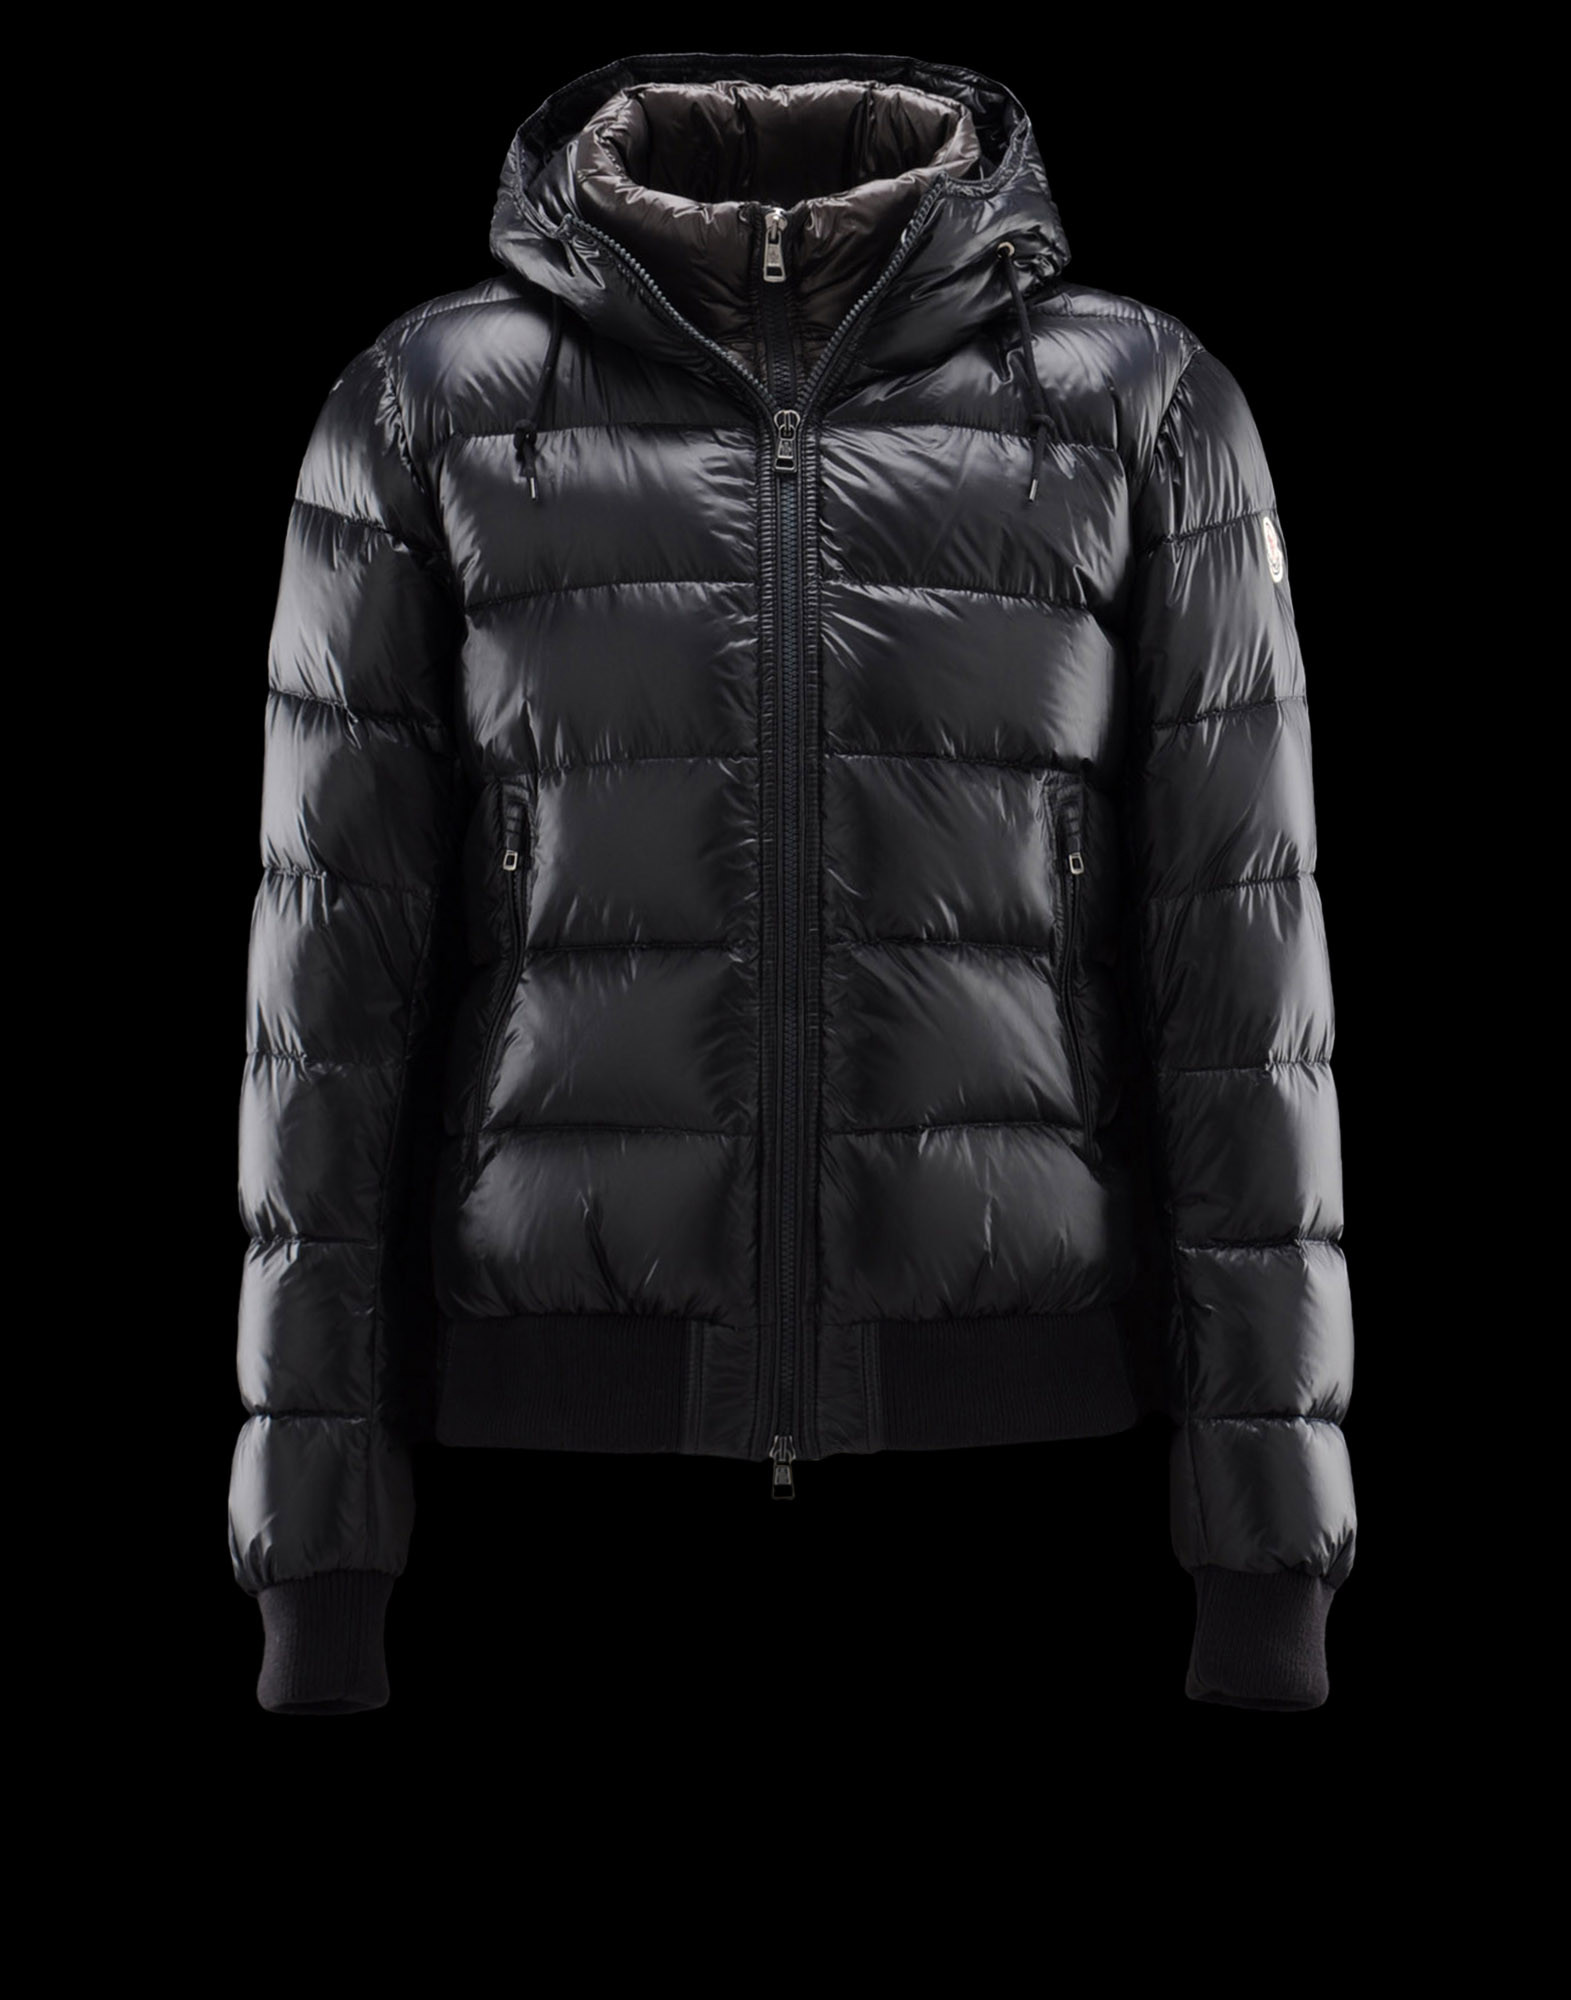 825362 Moncler Outlet Orlando Moncler Store Moncler Jacket For Women  - Cheap